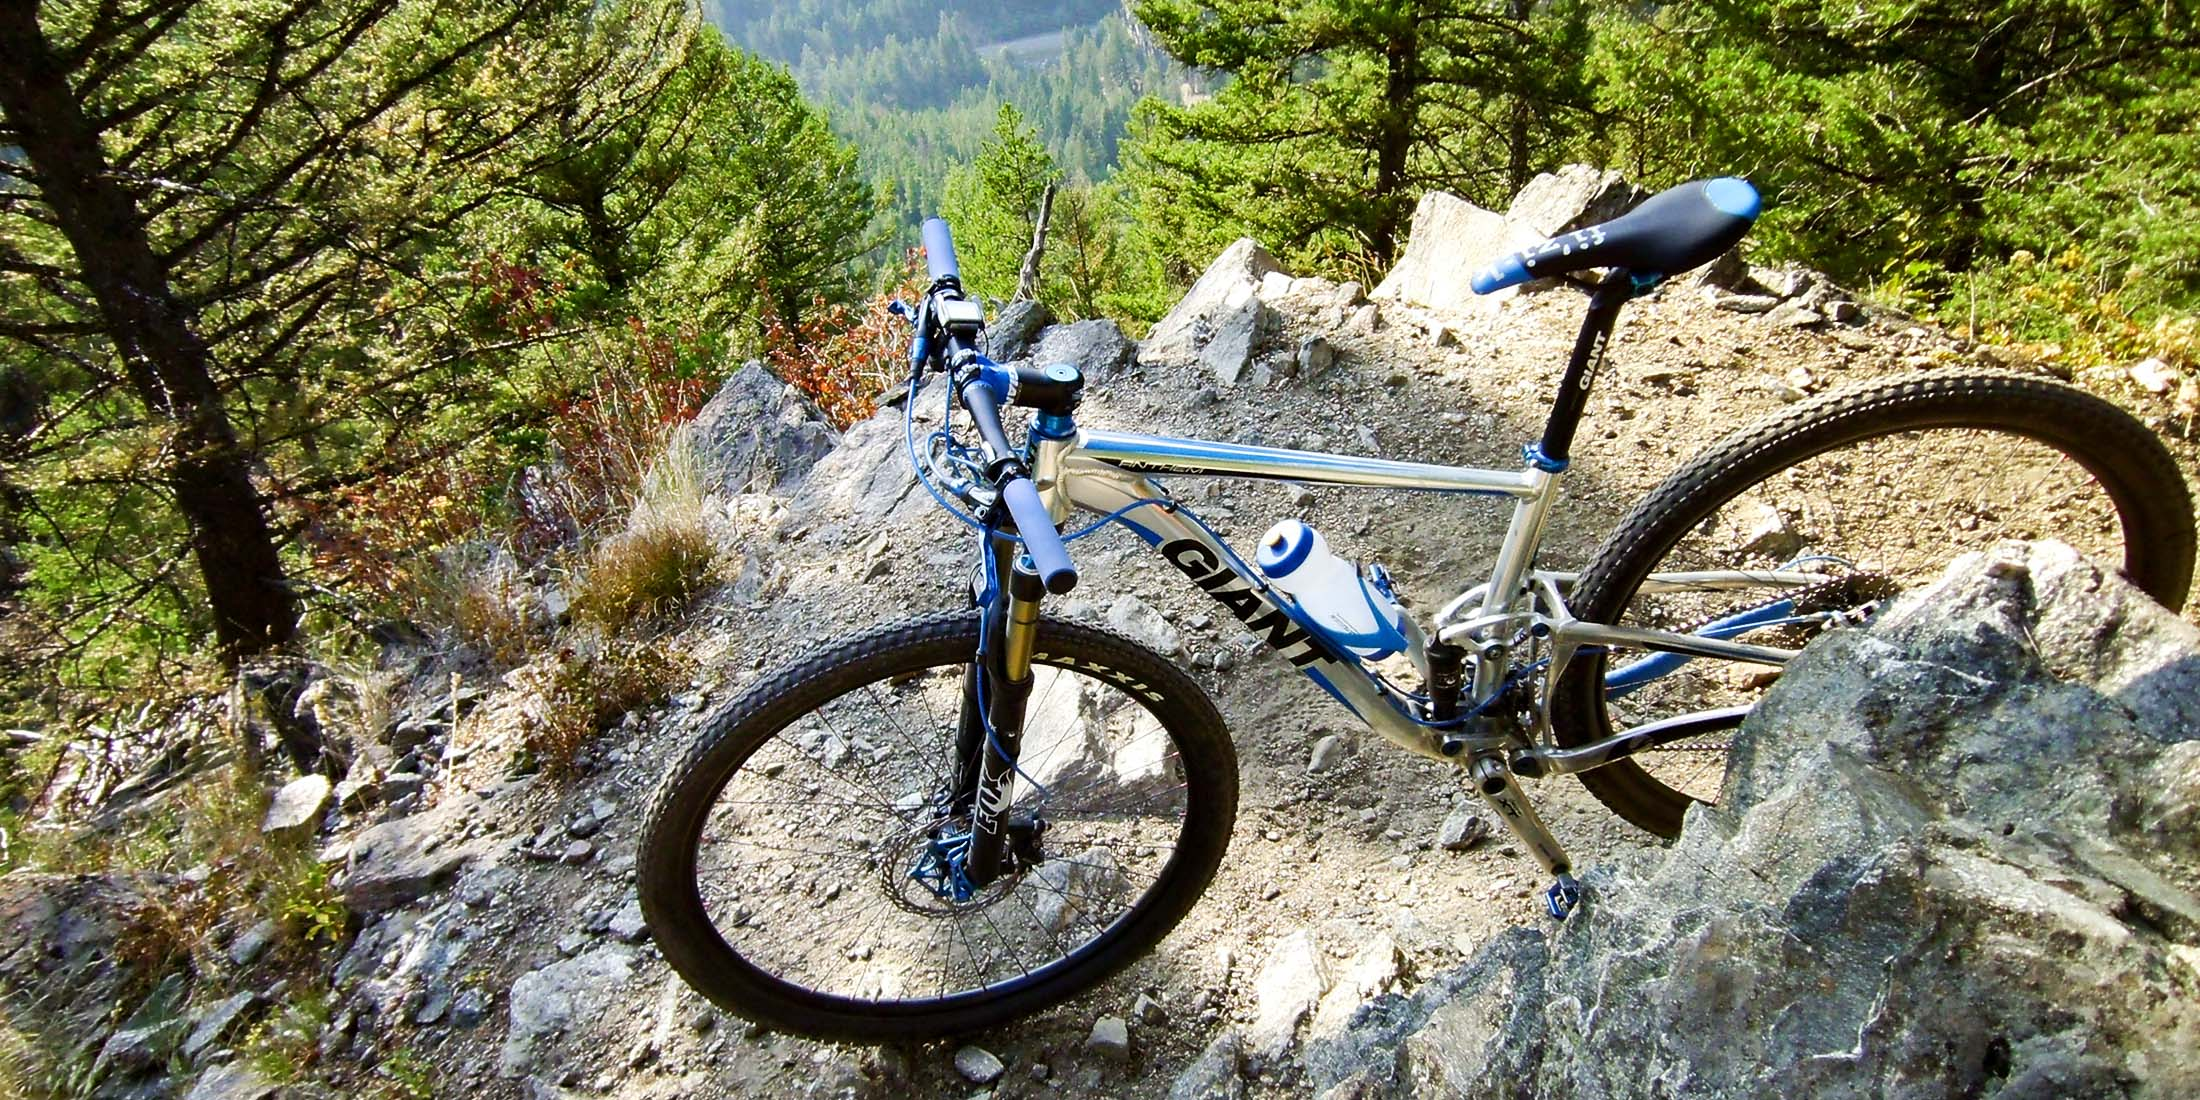 100's of miles of mountain biking trails and Highway 89 is a speed bikers dream!